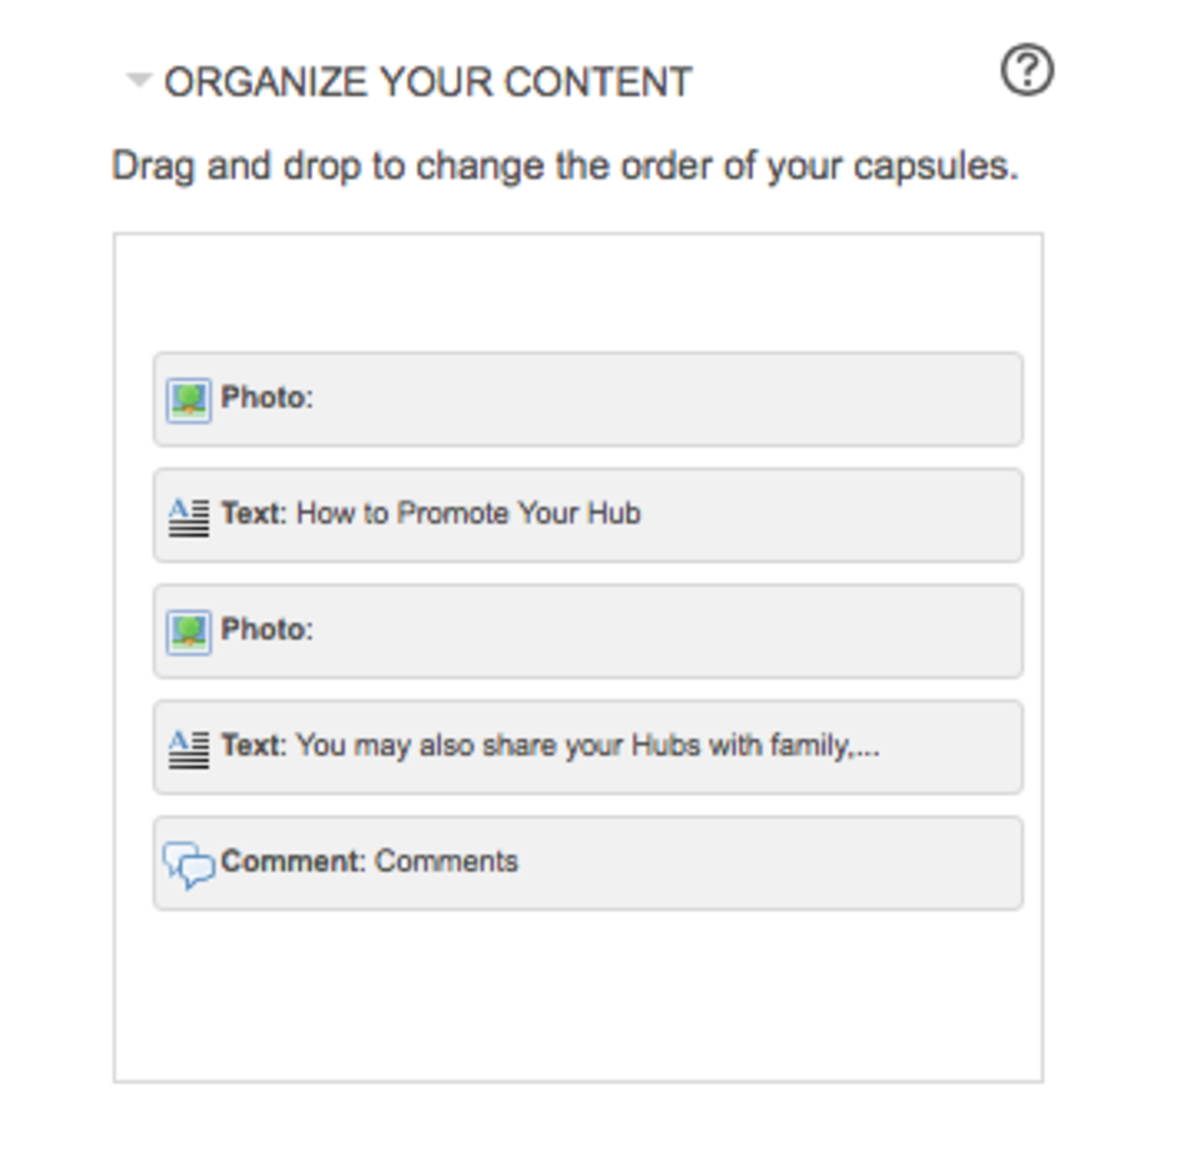 Drag and drop these modules to reorganize the capsules in your article.